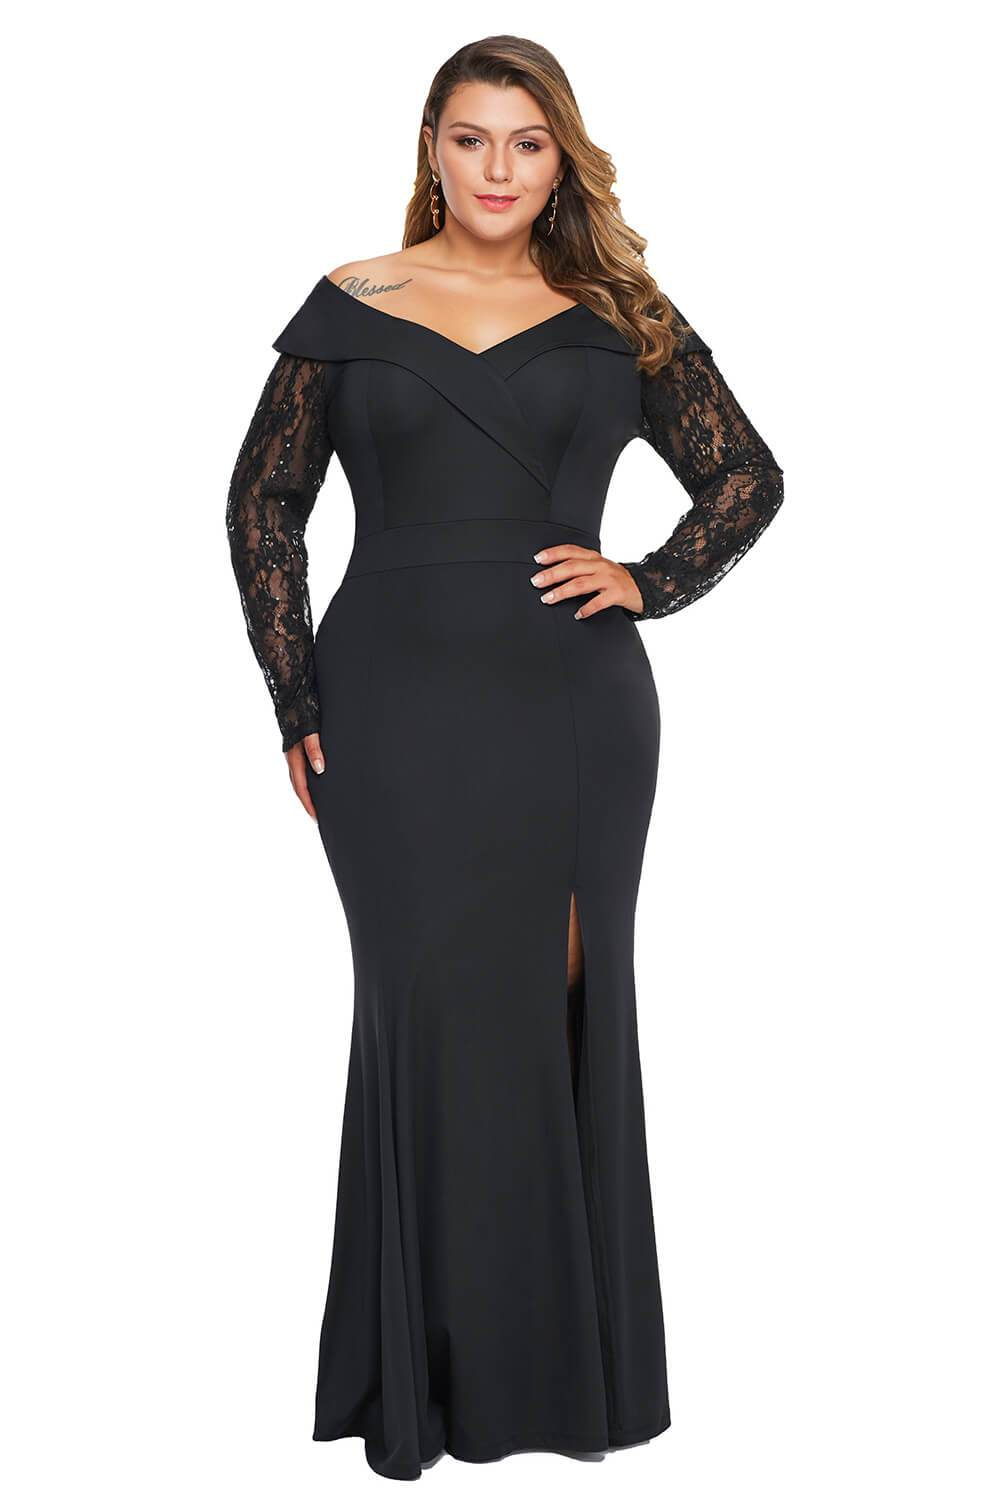 Beaded Lace Sleeve Off Shoulder Plus Size Gown-Plus Size Clothing, Plus Size Dresses-Azura Exchange